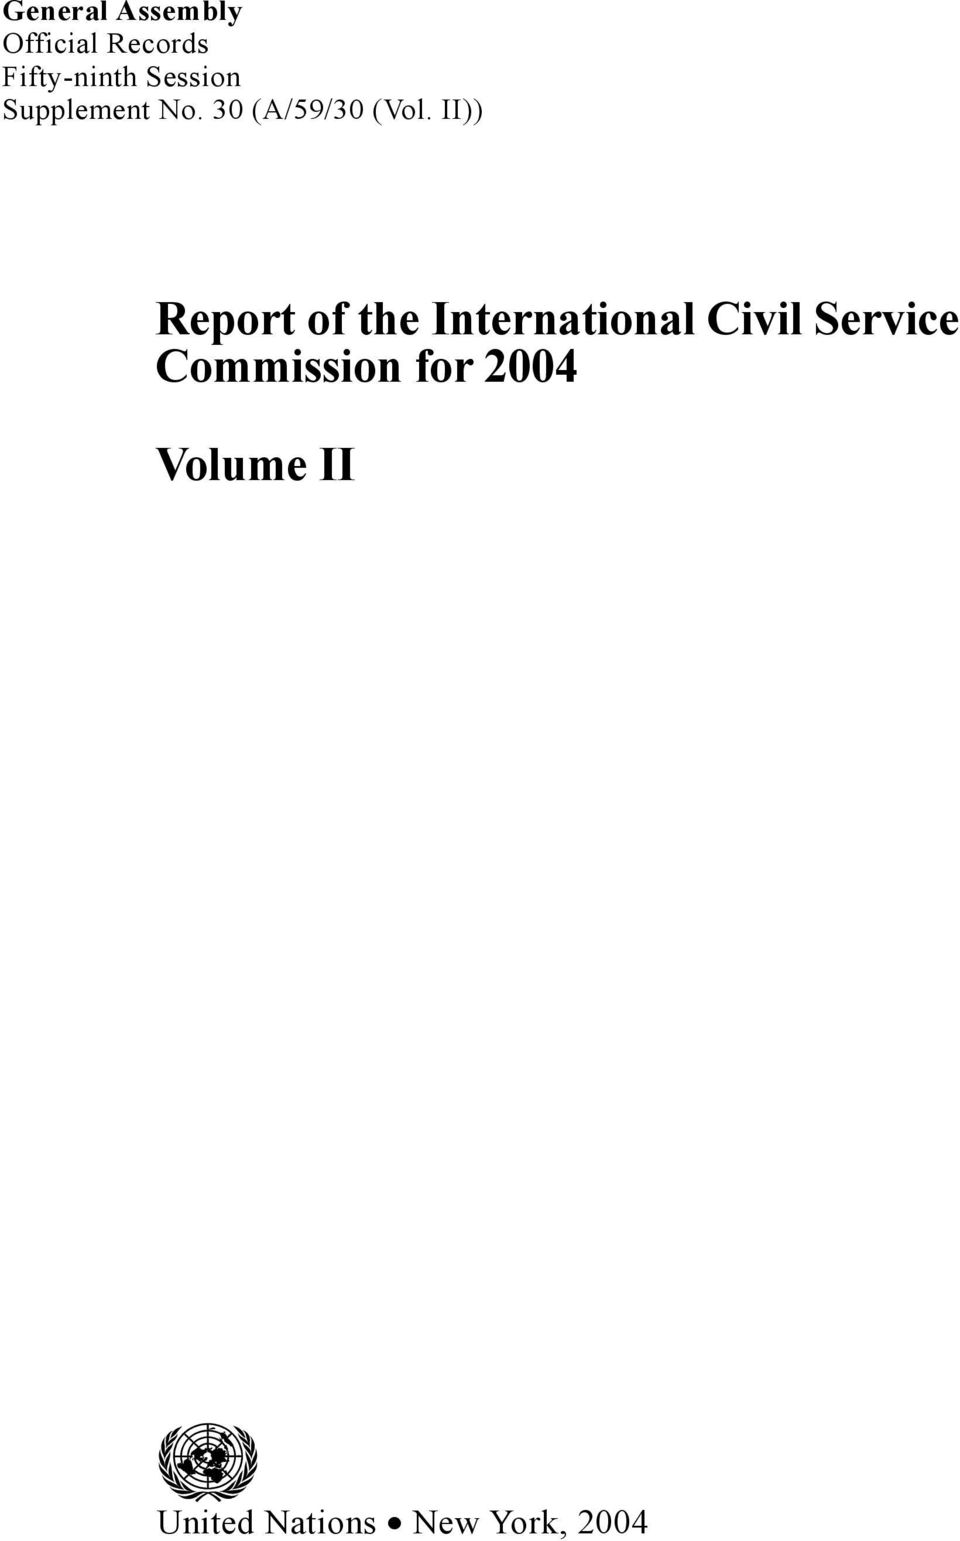 II)) Report of the International Civil Service